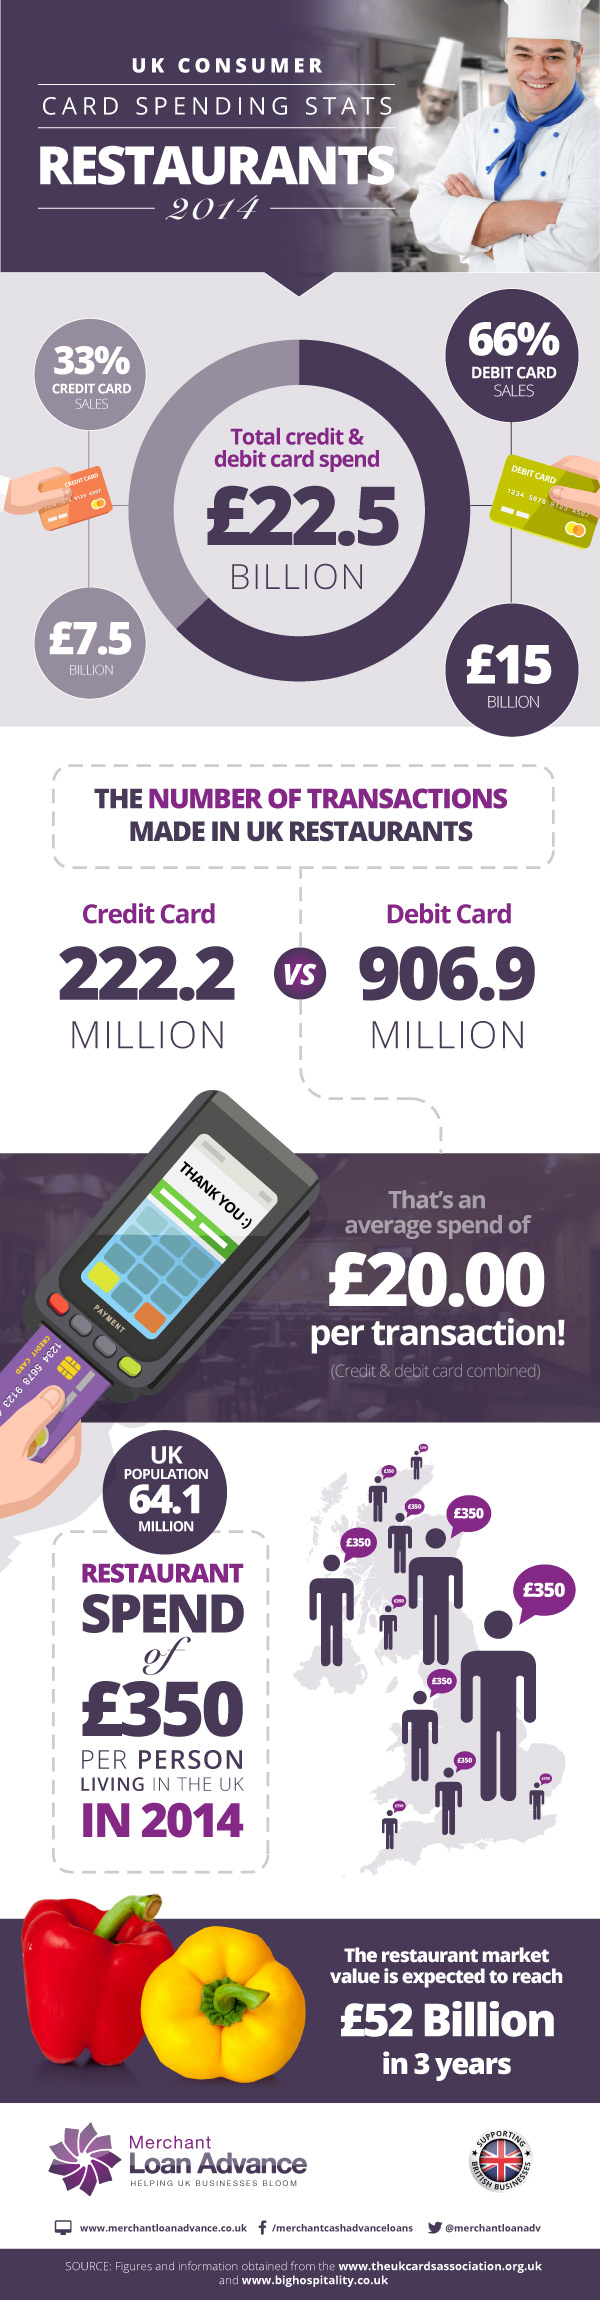 Infographic - UK Restaurant Card Statistics 2014 - Infographic